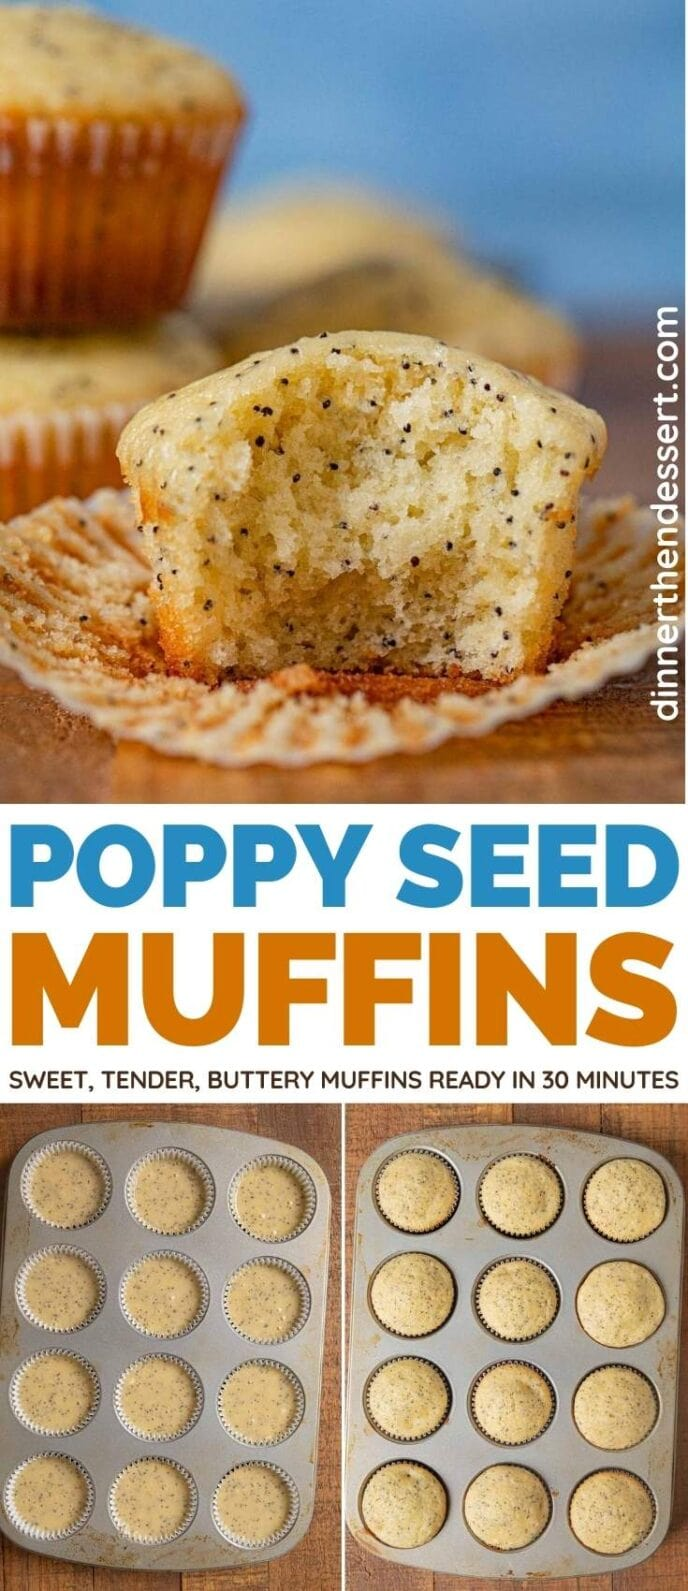 Poppy Seed Muffins collage